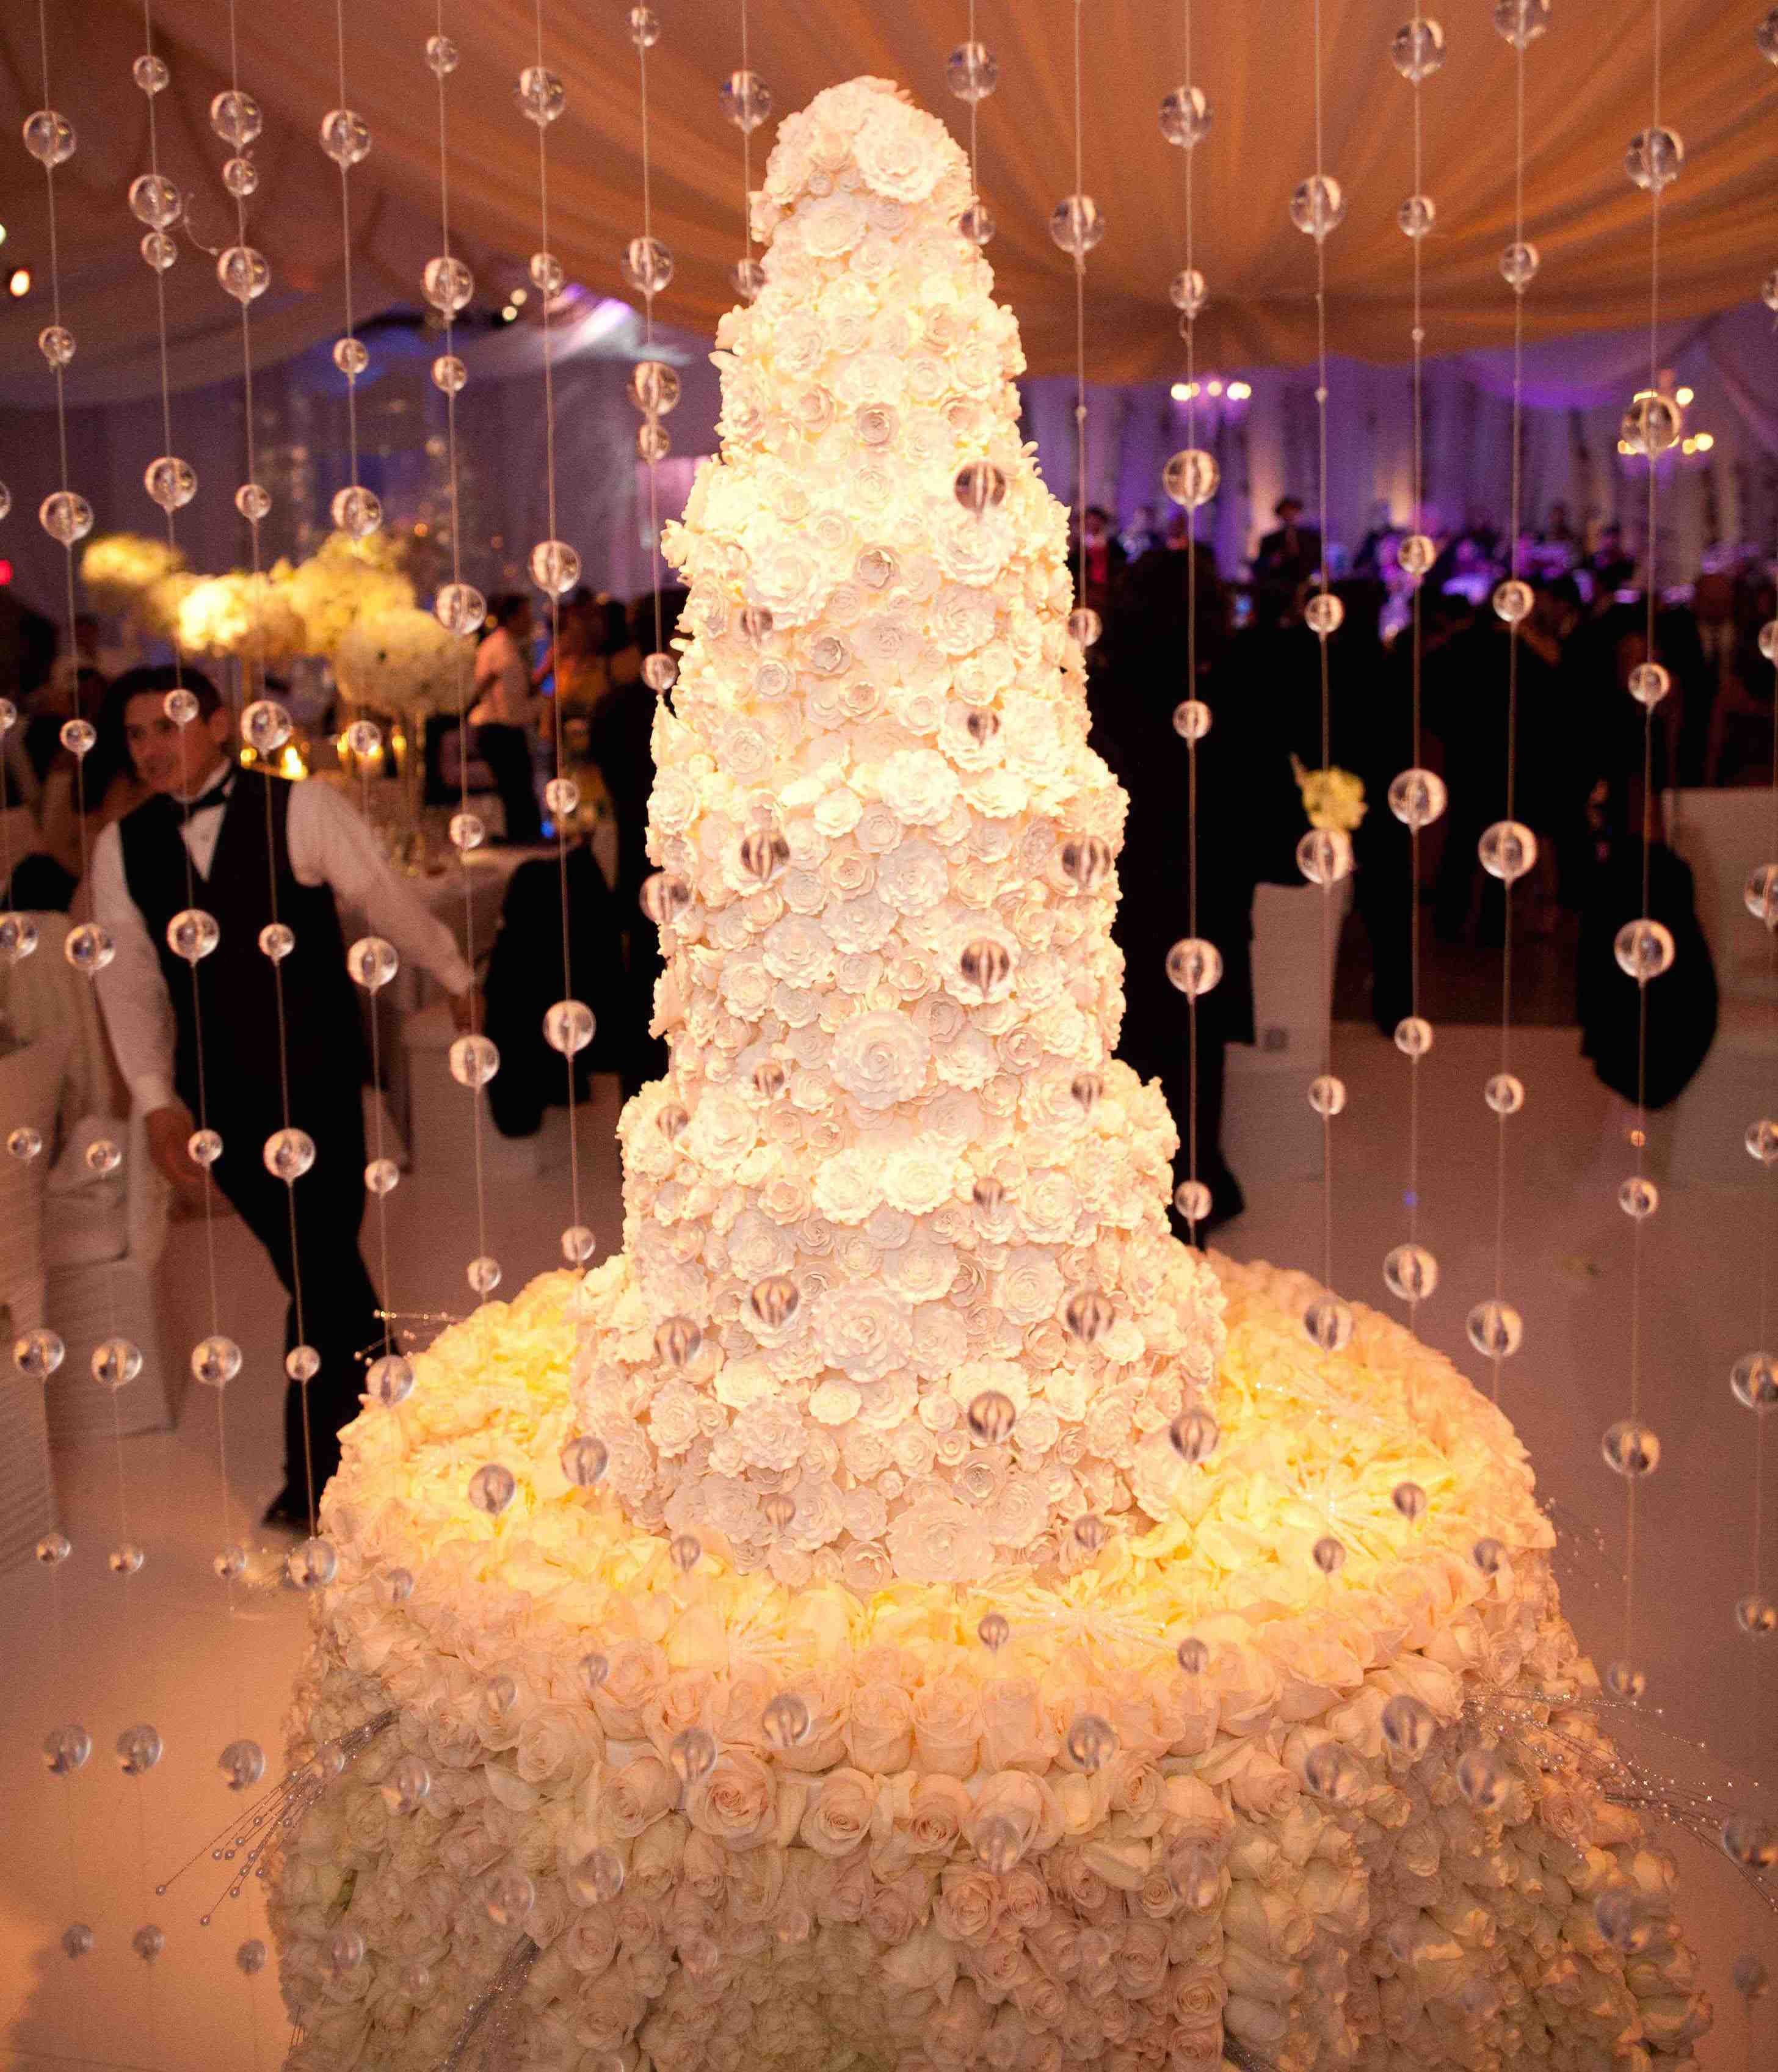 Wedding Cake Displays: Stunning Floral-Embellished Cake Tables ...